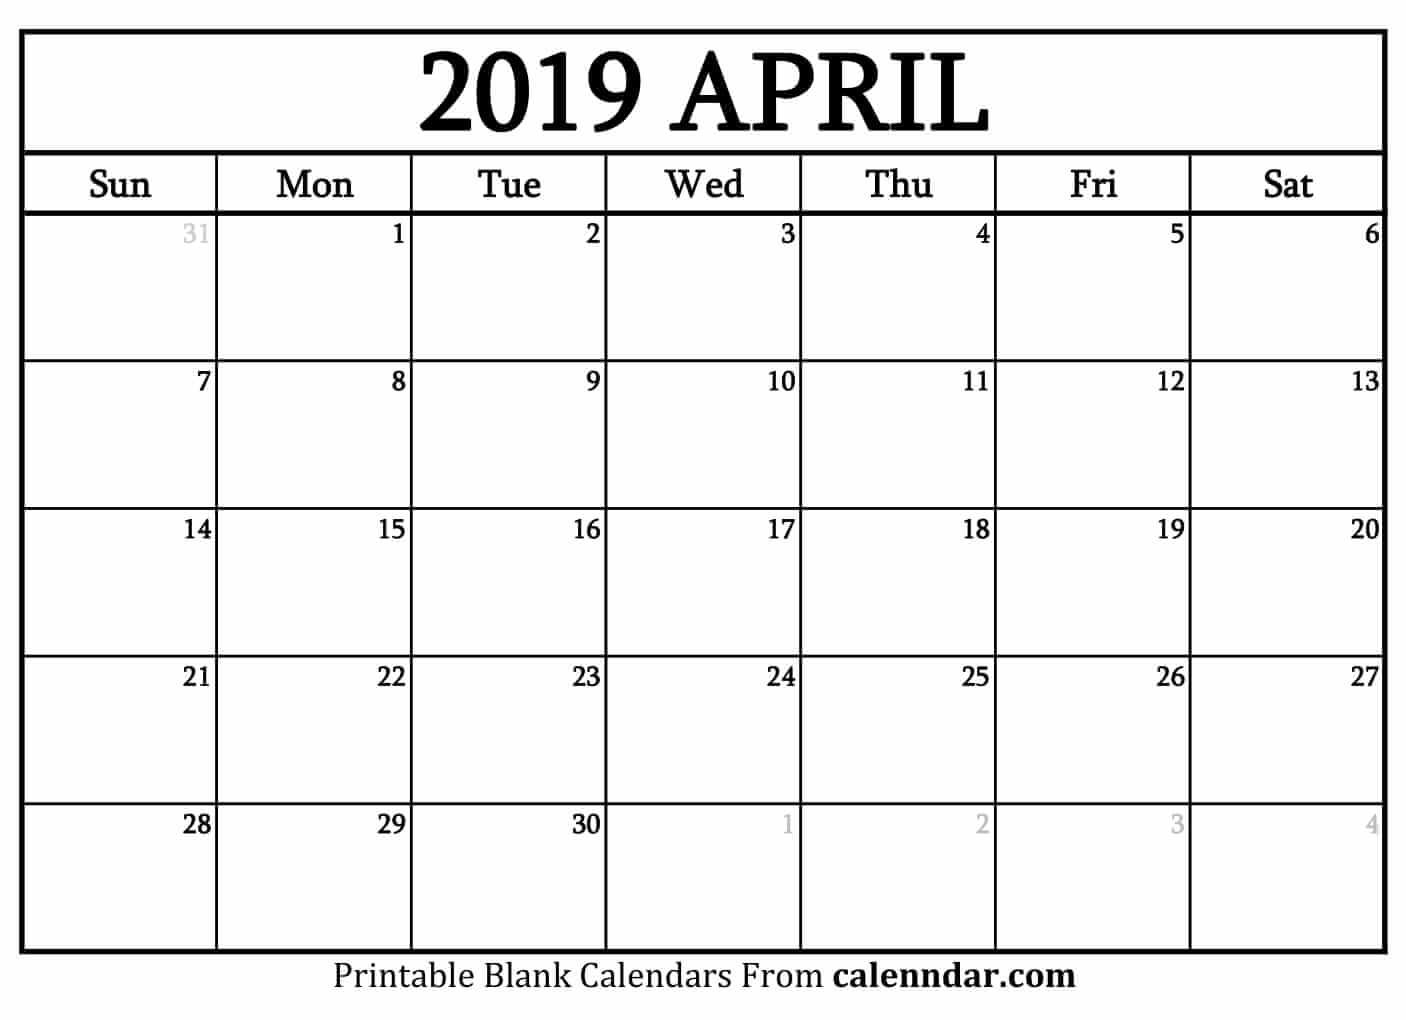 Blank April 2019 Printable Calendar - Printable Calendar 2019| Blank A Calendar For April 2019